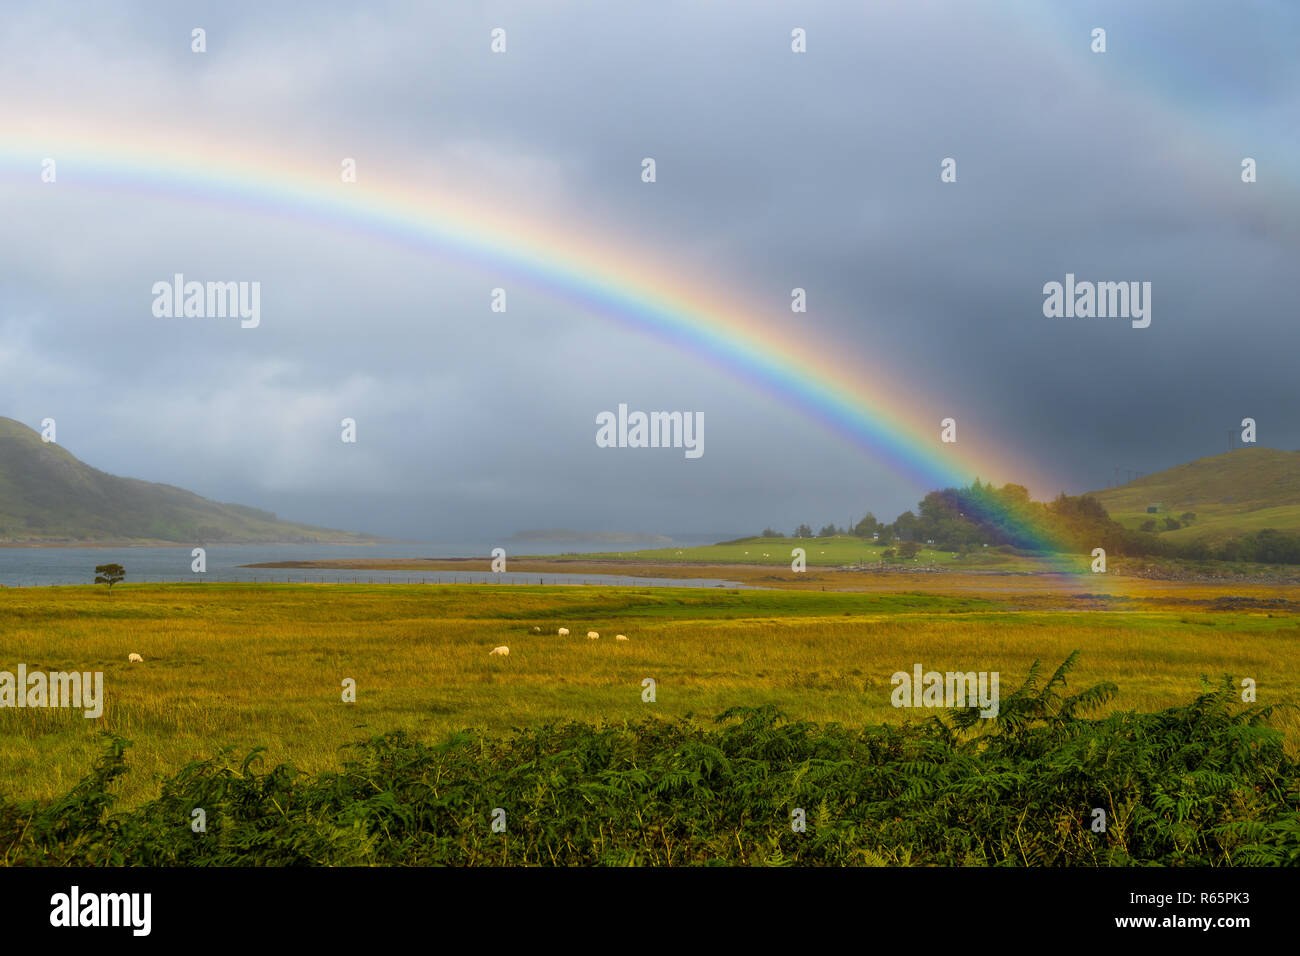 Colorful Rainbow Over Fresh Pasture With Sheep On The Isle Of Skye In Scotland - Stock Image